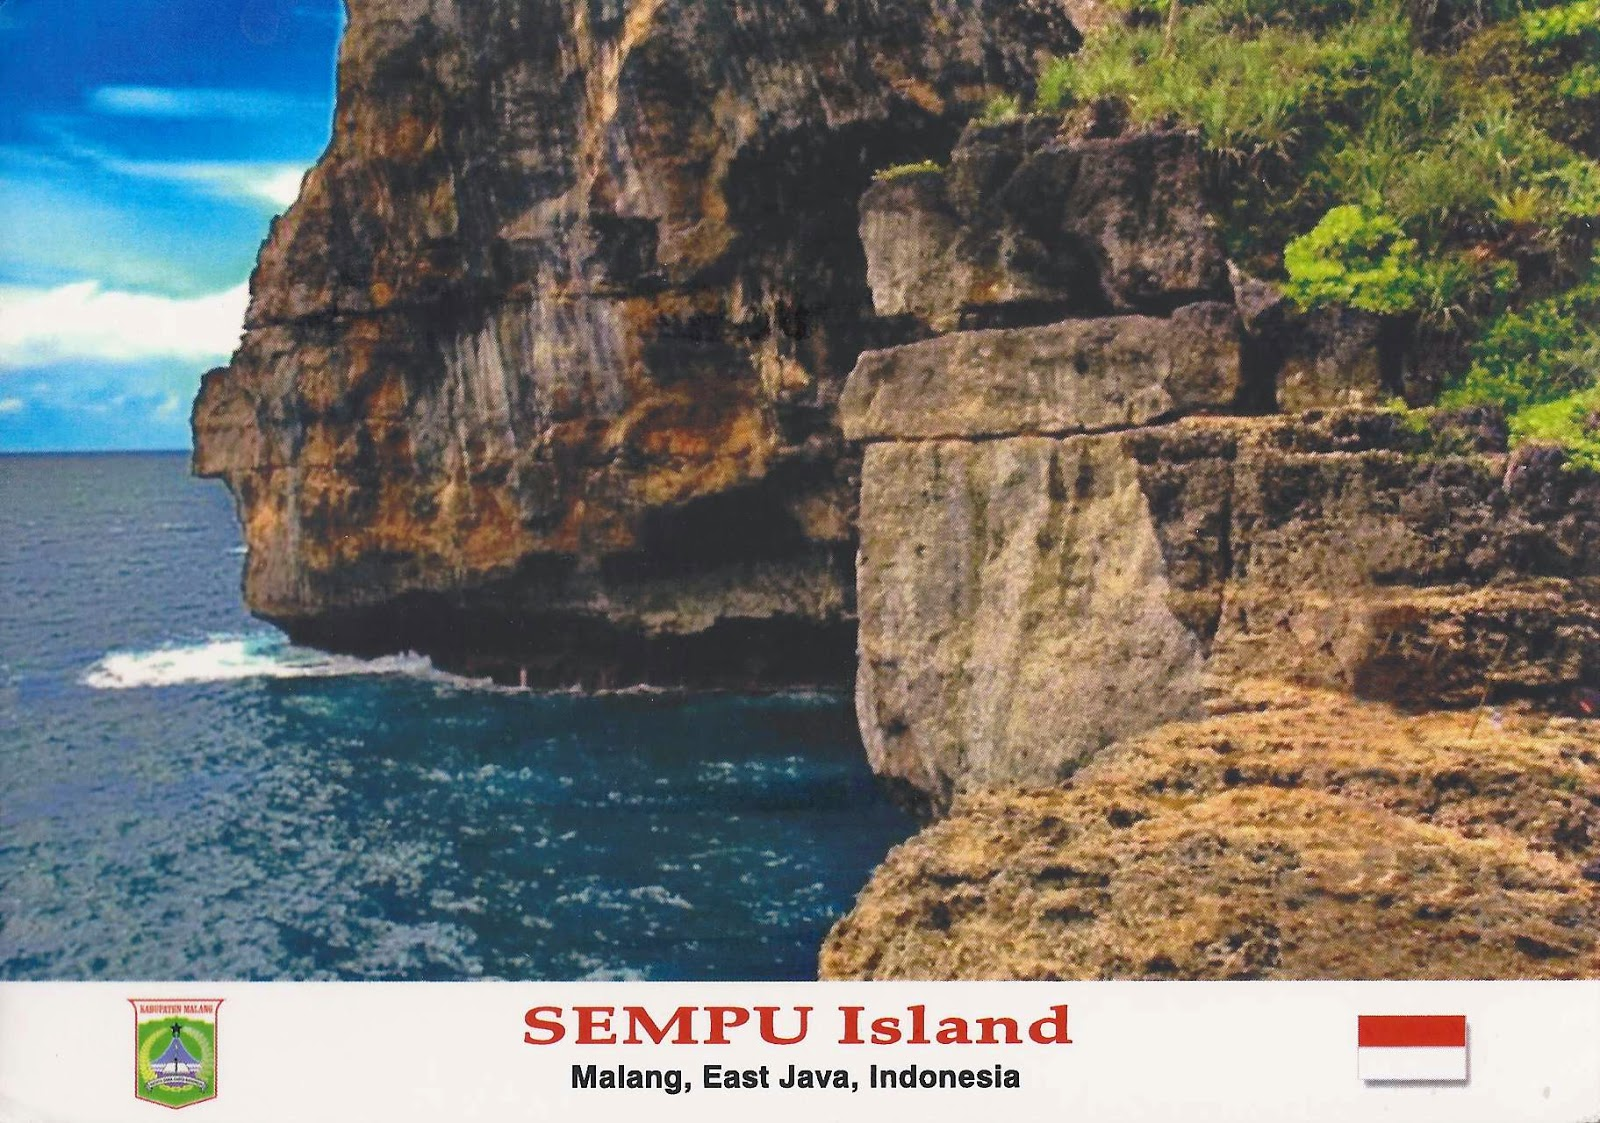 Lost paradise of Sempu Island